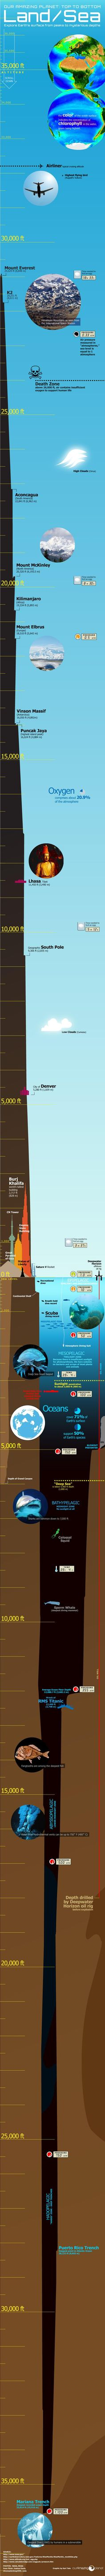 Check out this amazing Land/Ocean graphic - what a visual way to learn about Earth! #unitstudies